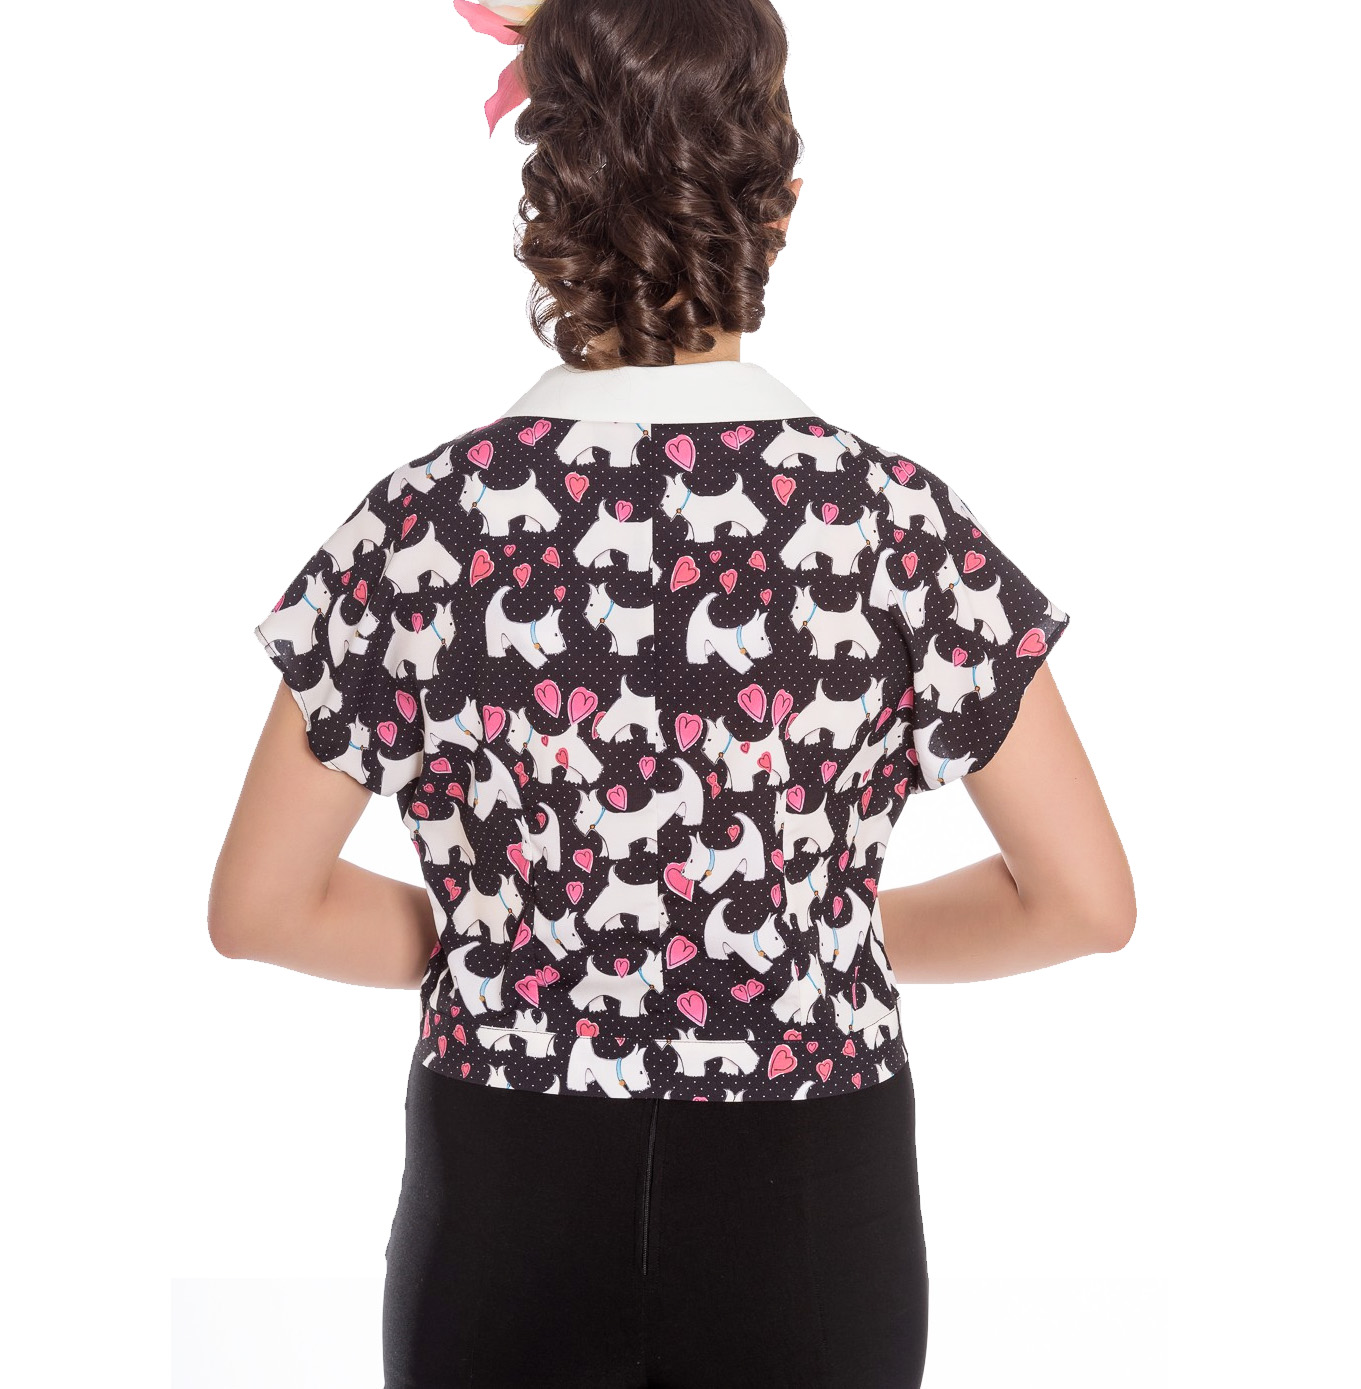 Hell-Bunny-50s-Retro-Top-Scottie-Dog-Heart-AGGY-Cropped-Blouse-Shirt-All-Sizes thumbnail 9